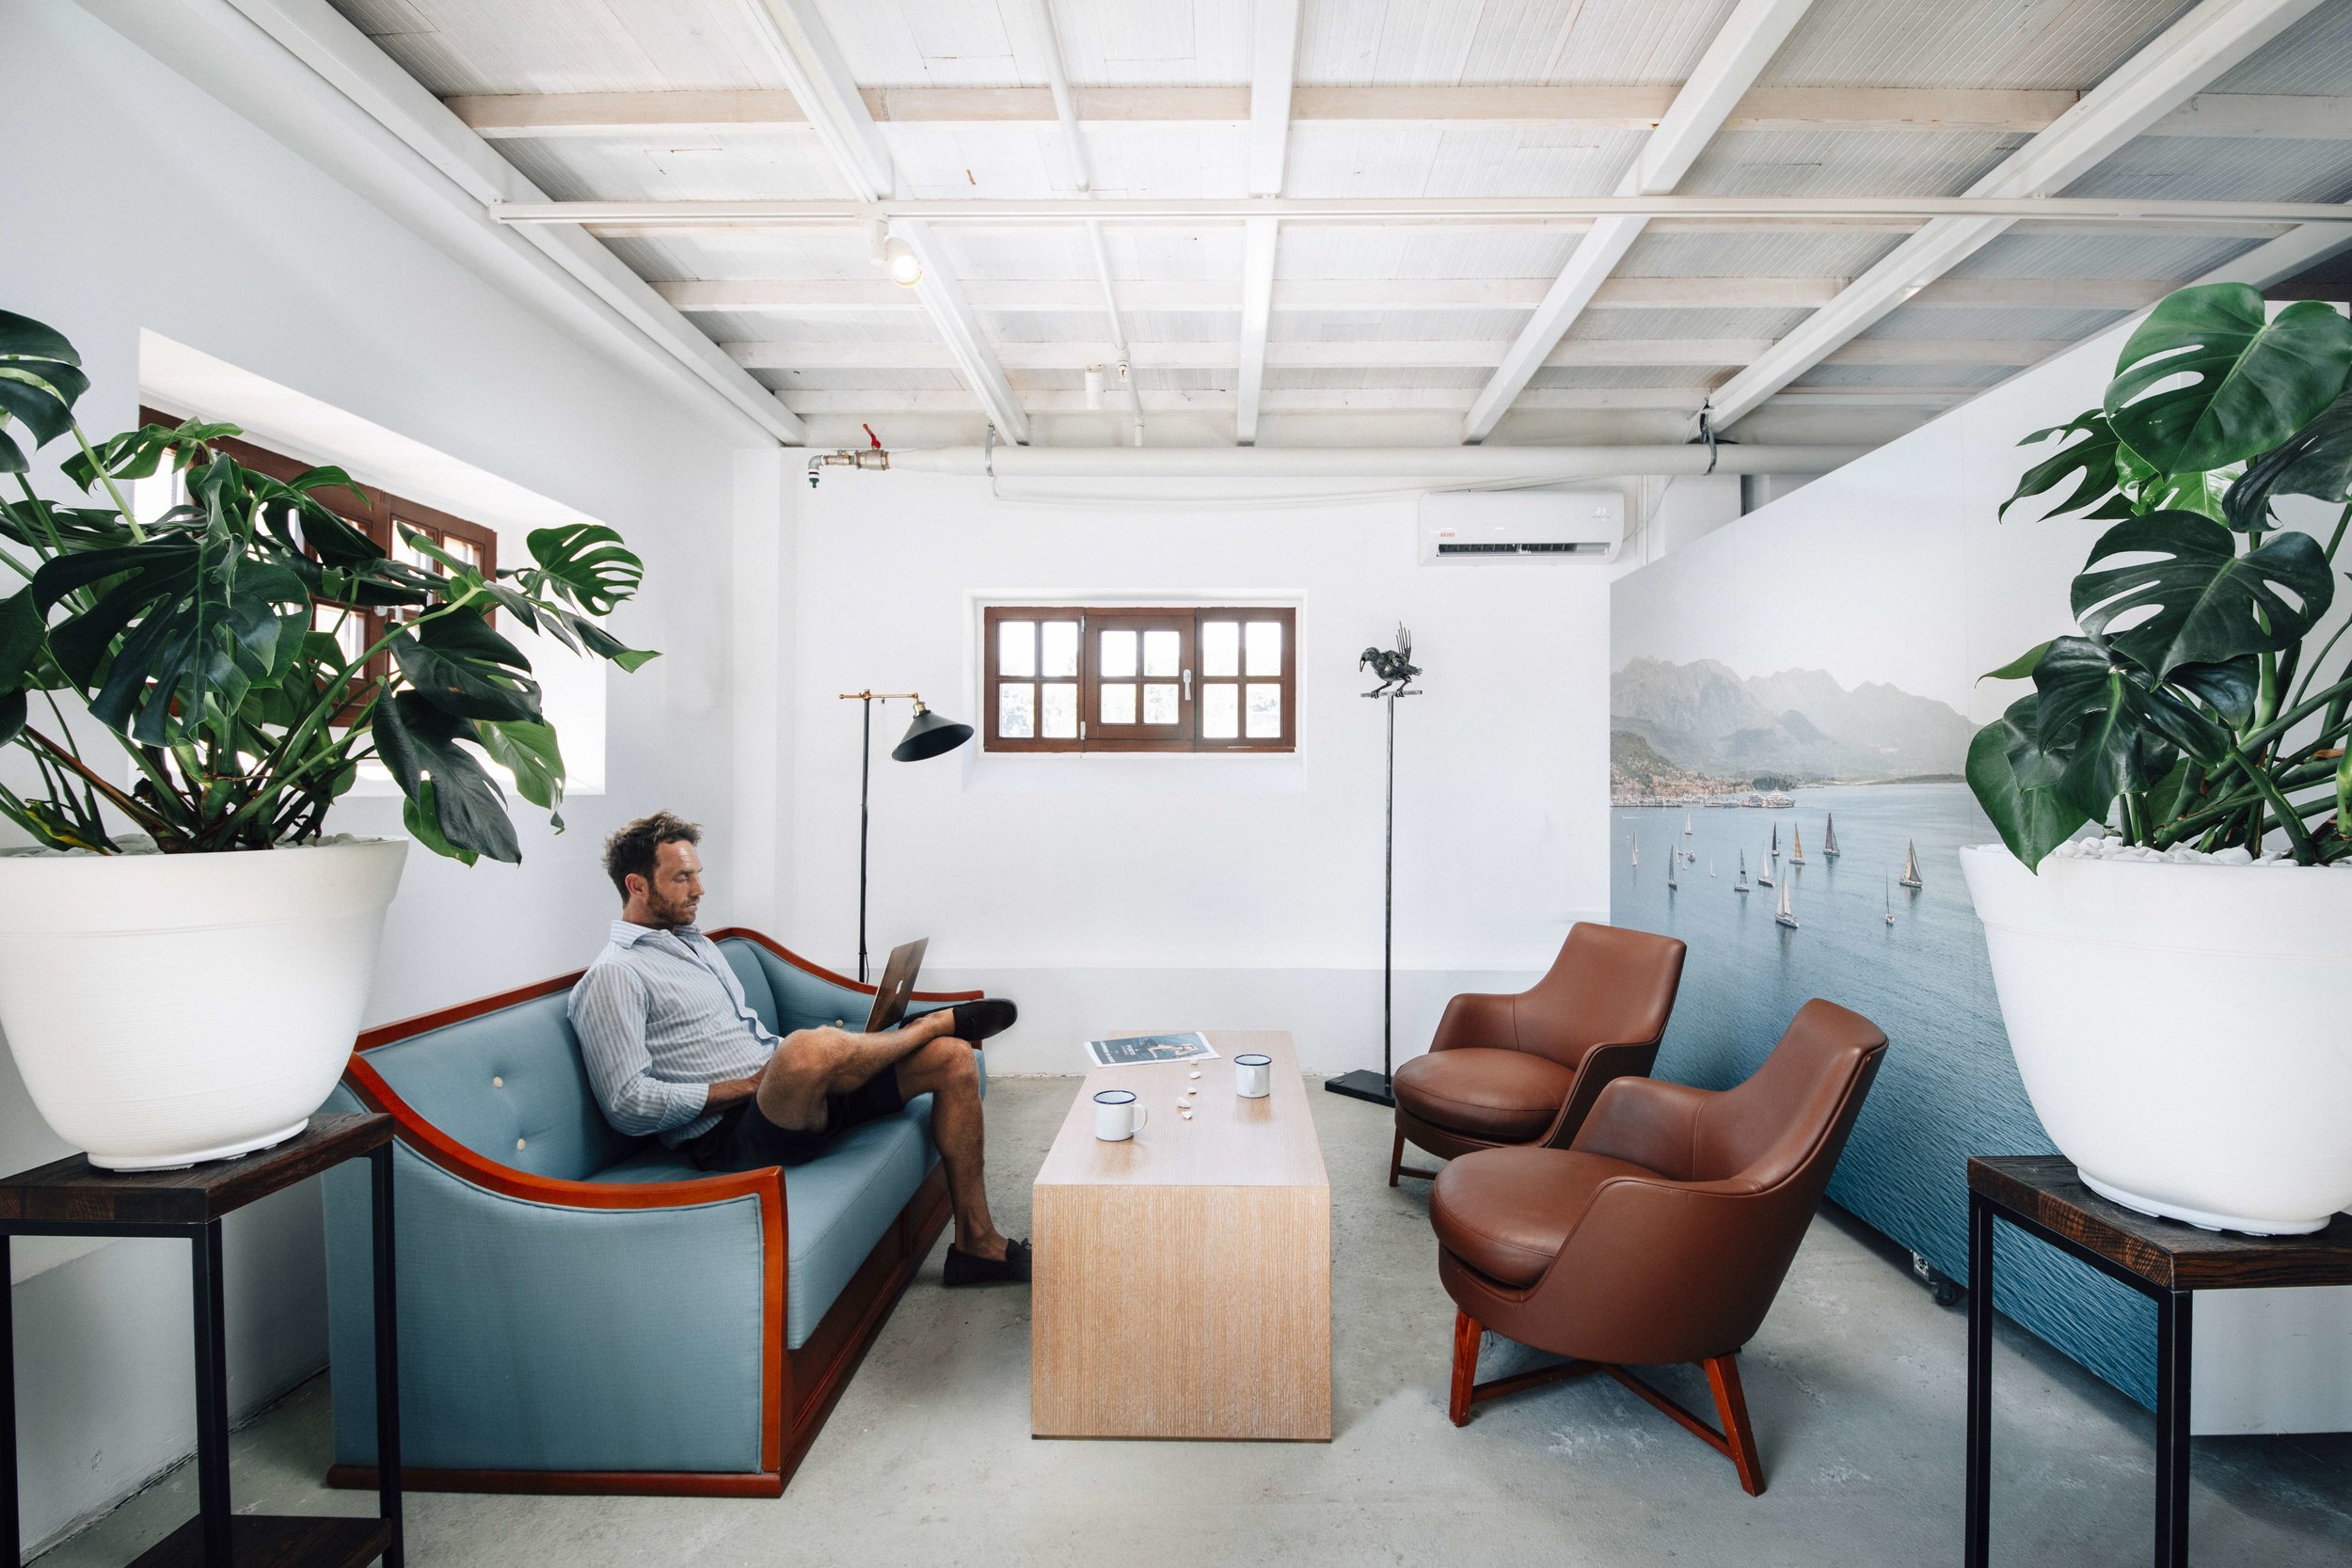 Healthy Interior Design at the Innovation Centre coworking